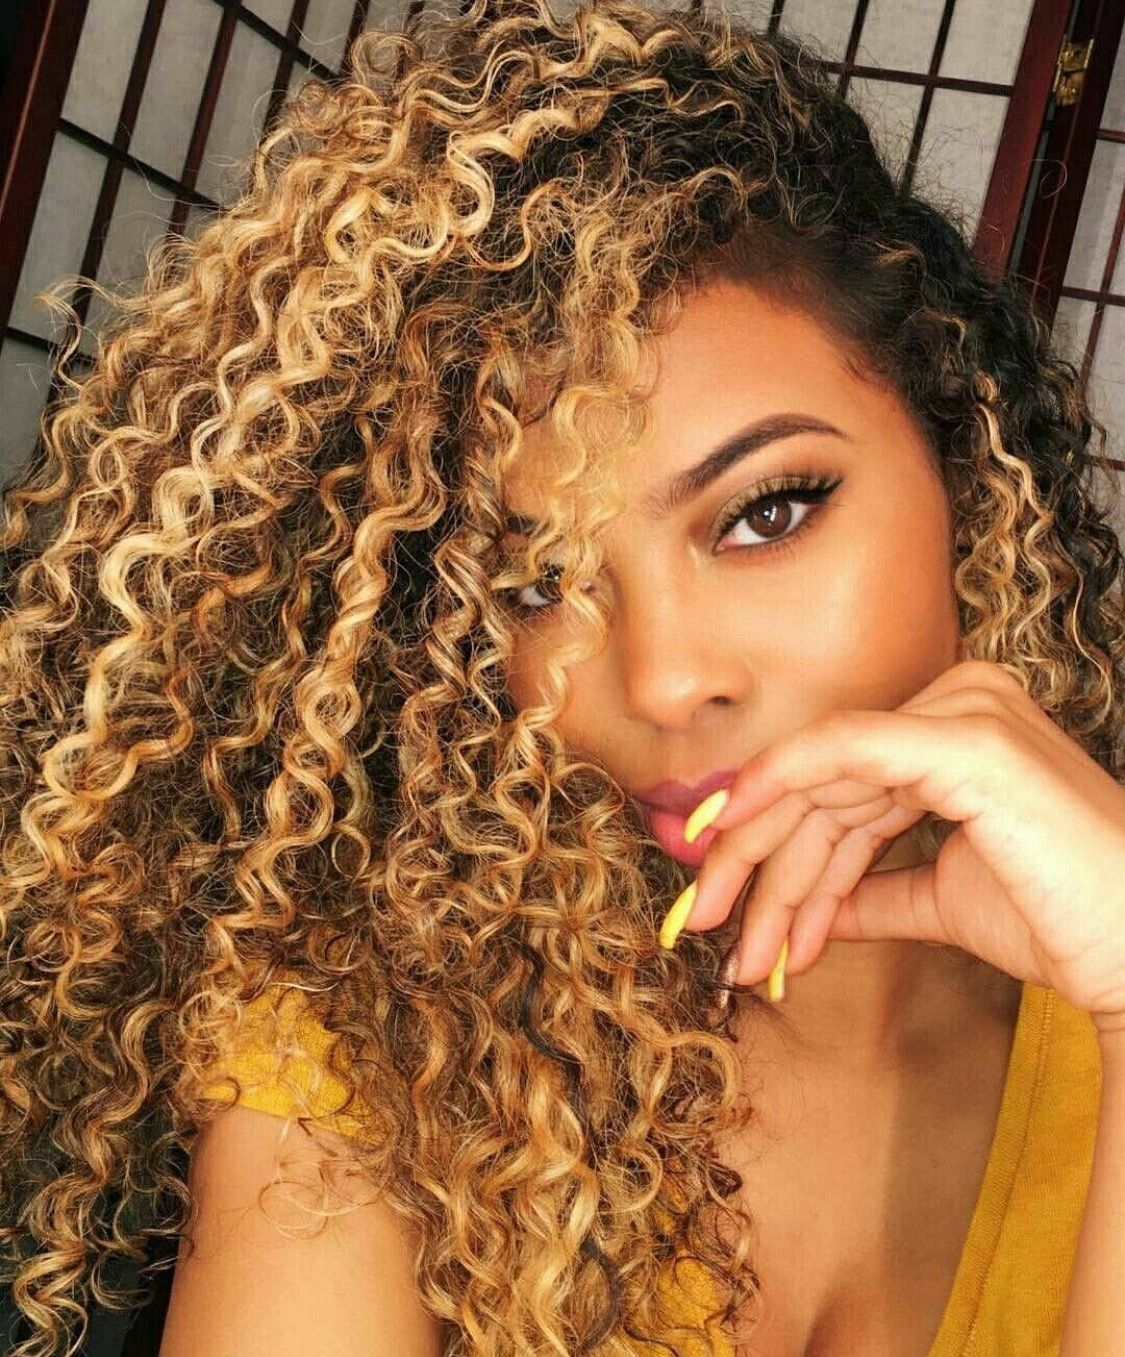 Diggin The Nails With The Hair Blonde Highlights Curly Hair Natural Curls Hairstyles Curly Hair Styles